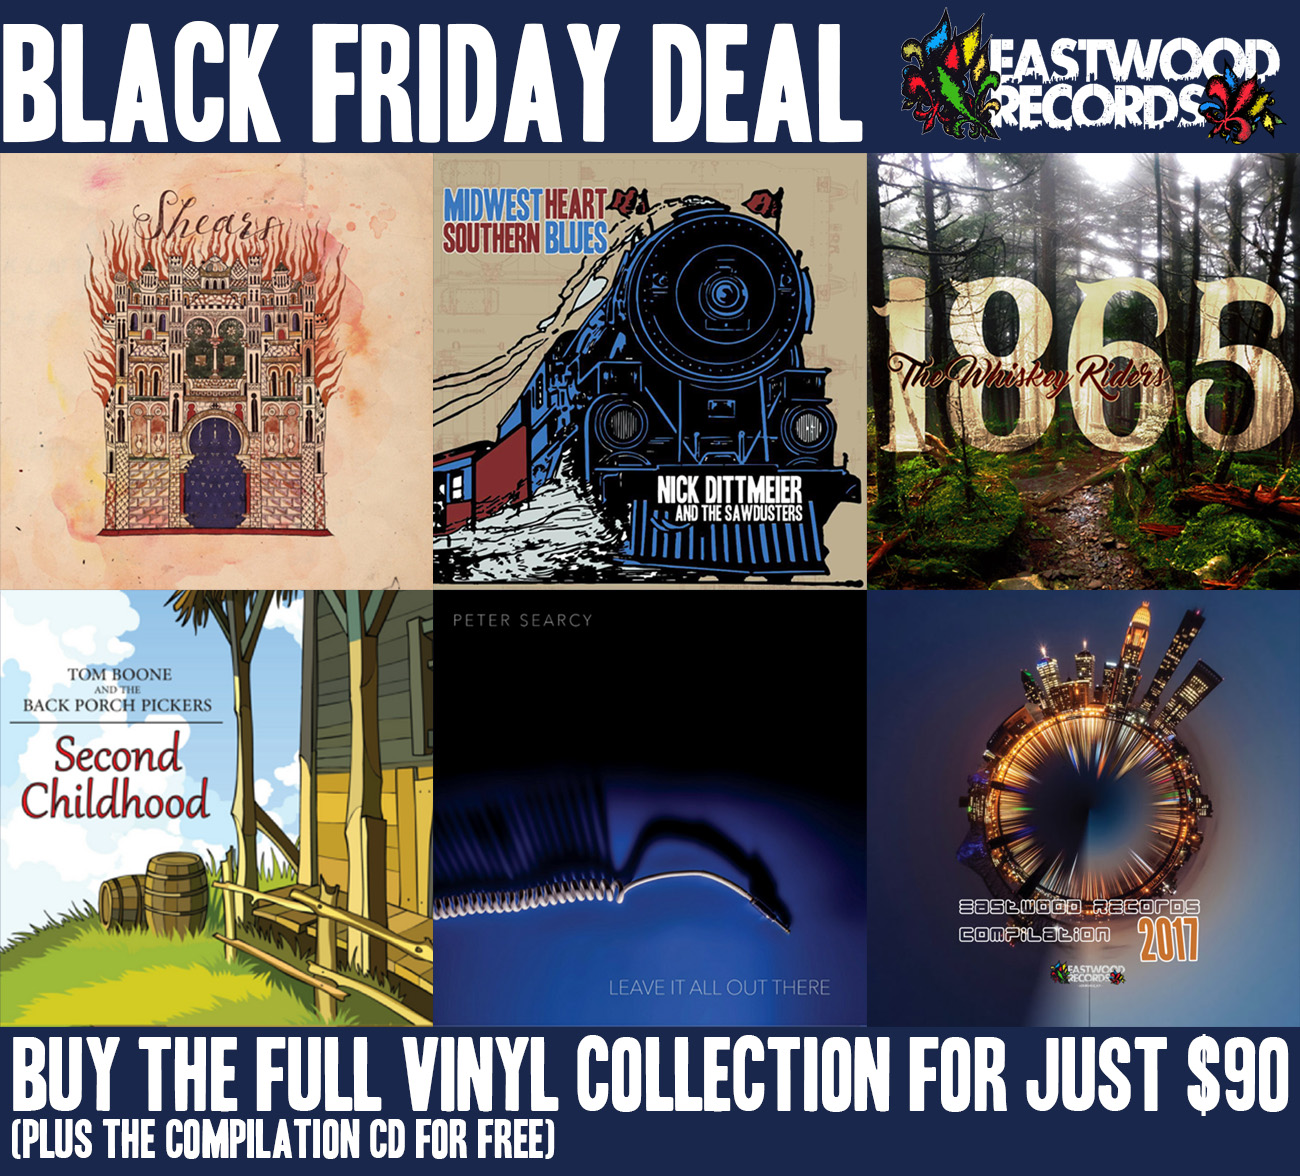 Deals on vinyl records